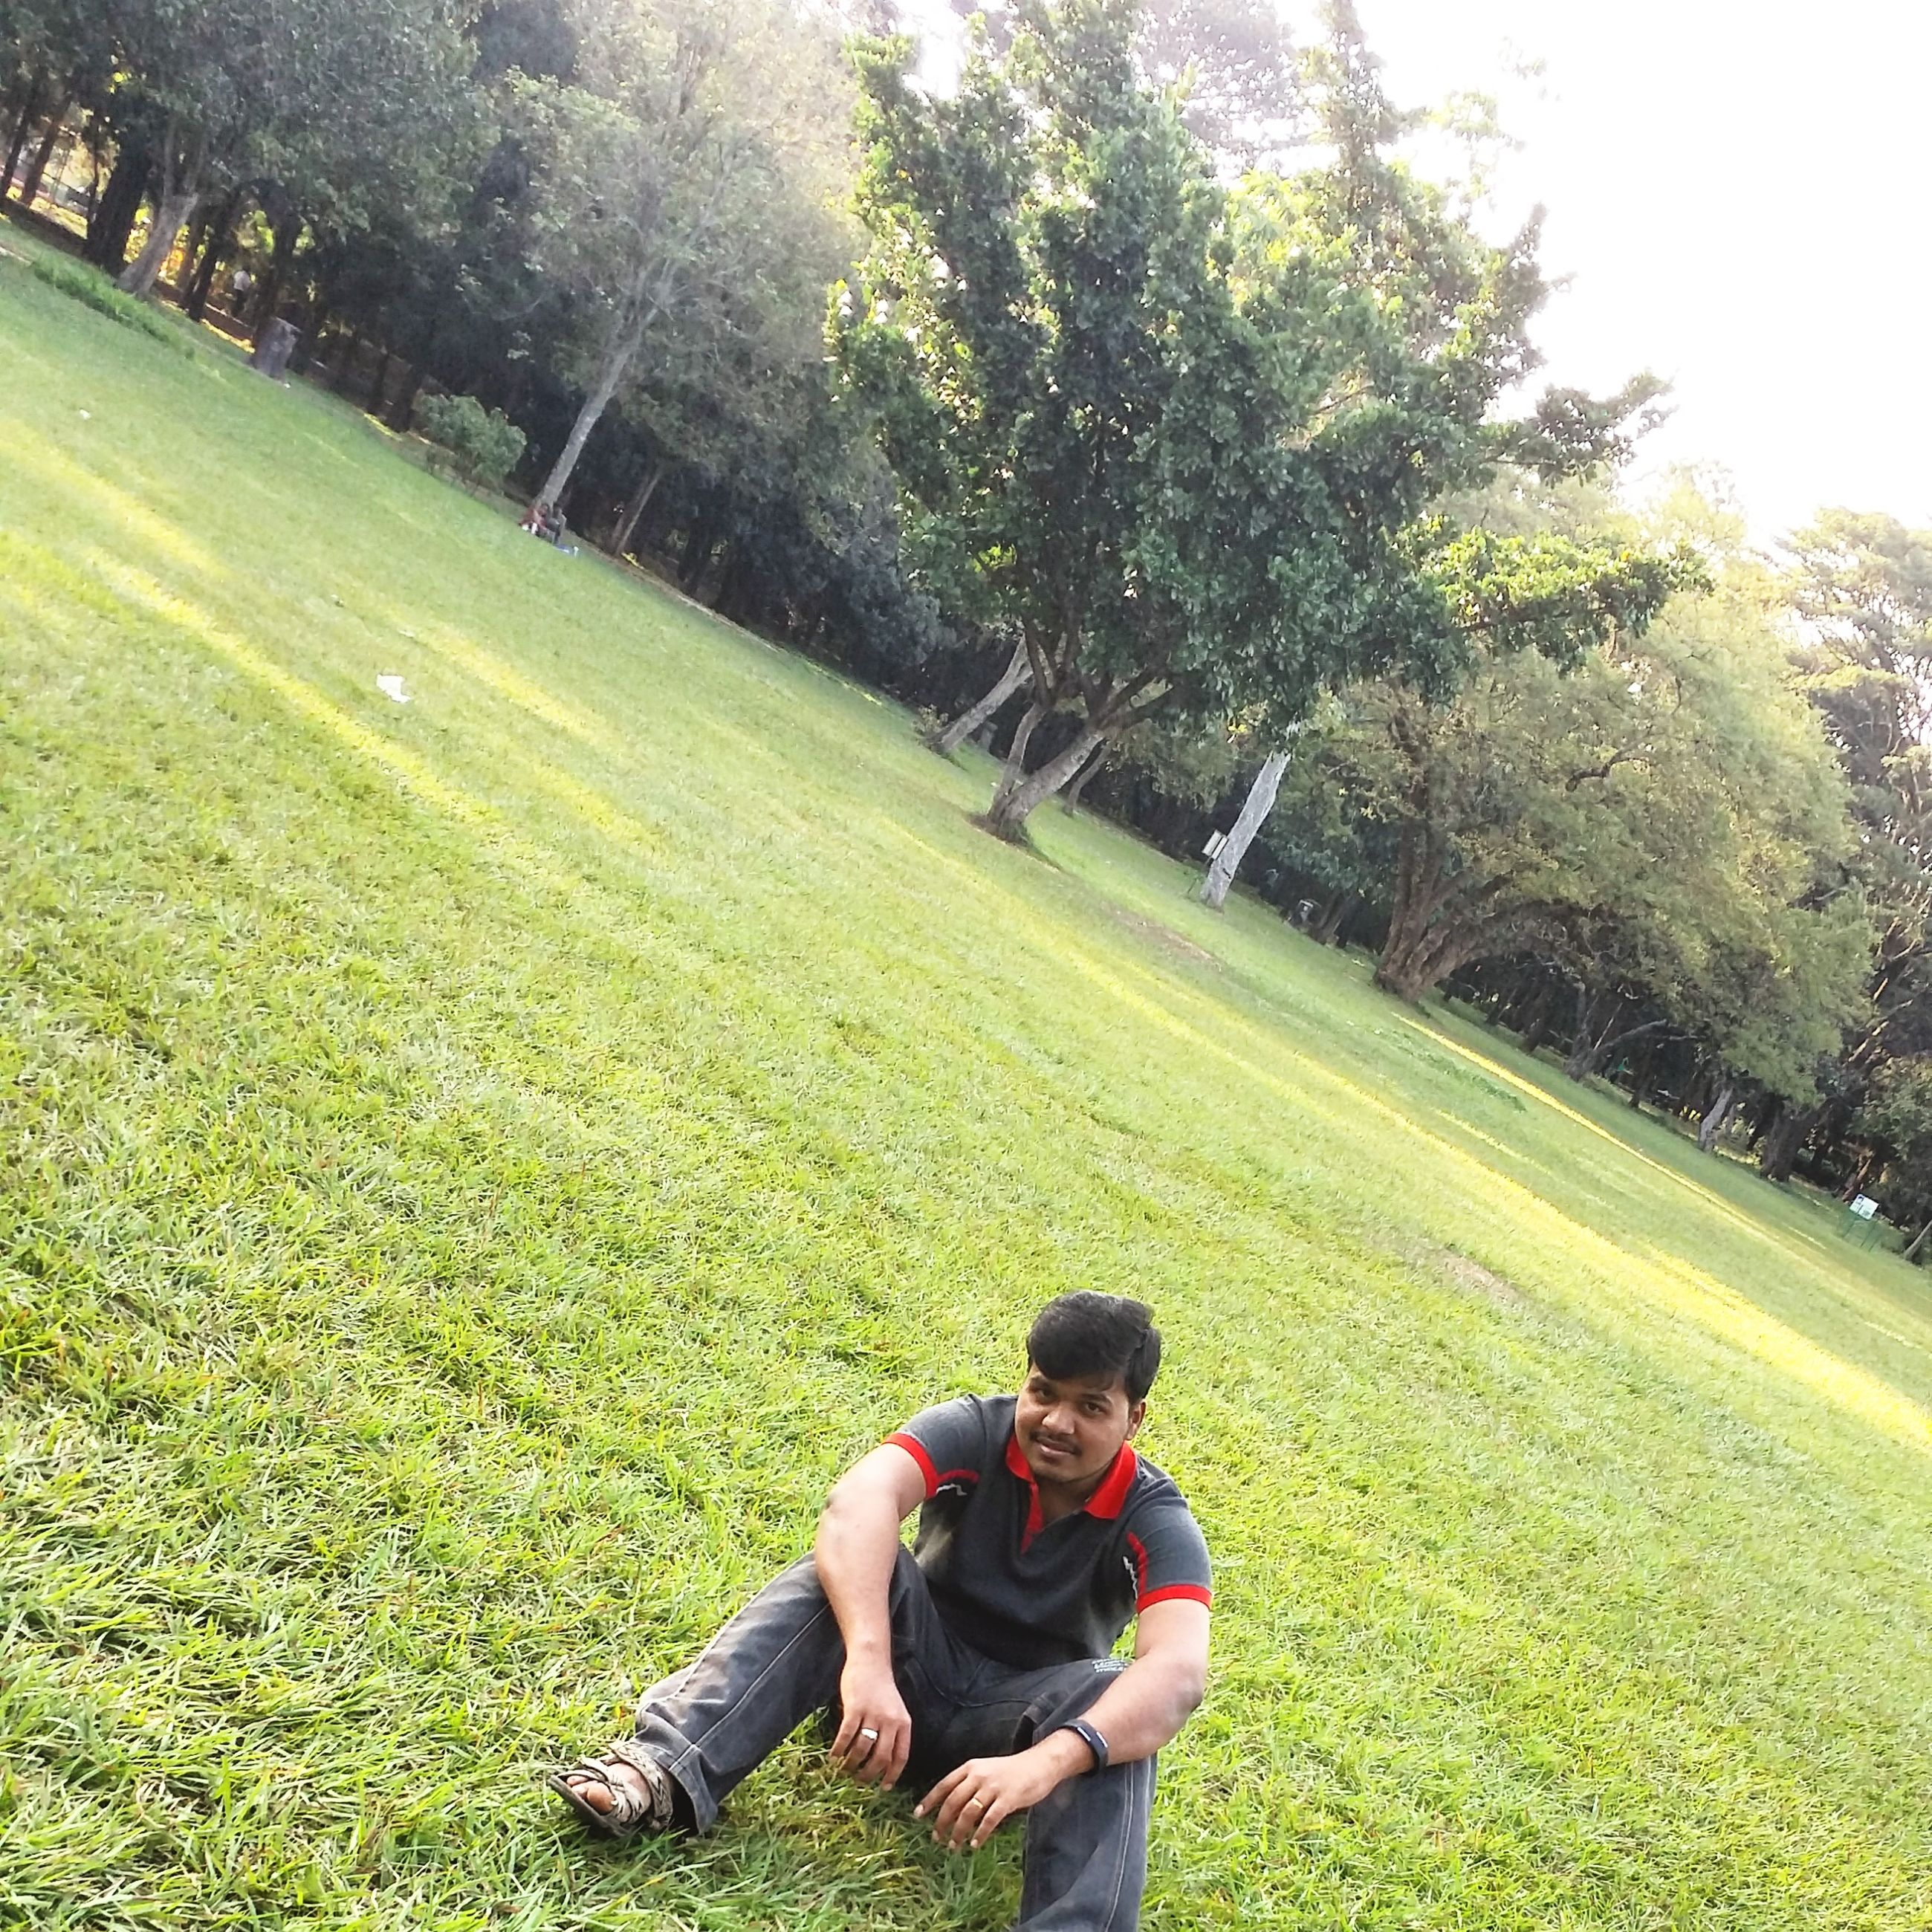 lifestyles, leisure activity, grass, casual clothing, green color, full length, field, relaxation, sitting, grassy, person, childhood, tree, men, landscape, nature, rear view